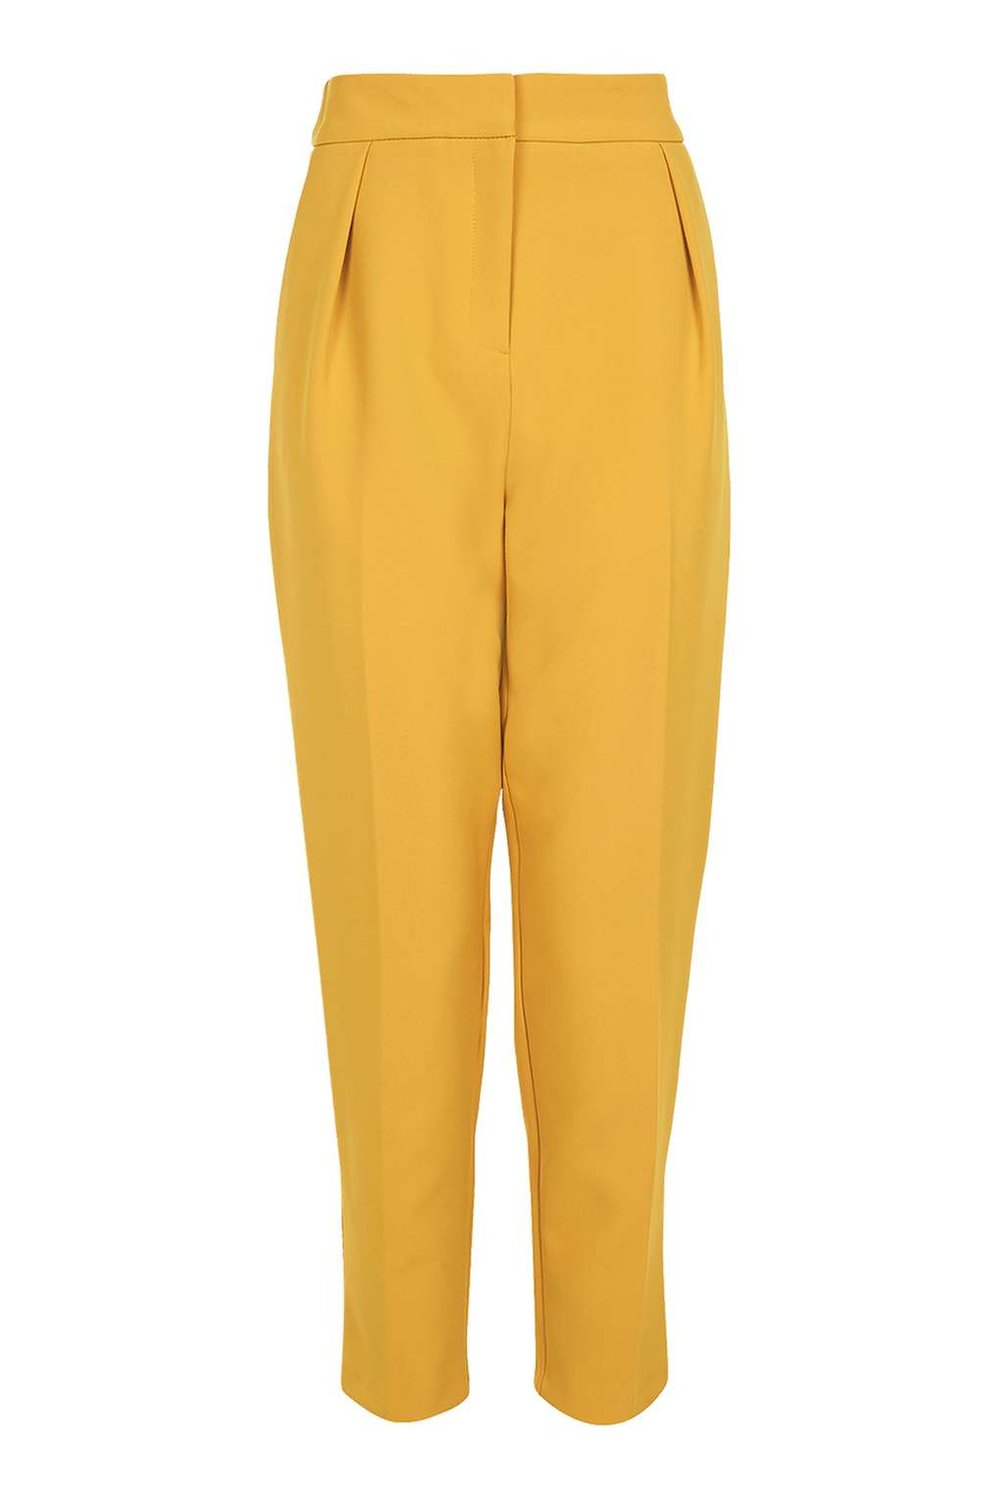 TOPSHOP CLEAN PEG PANTS